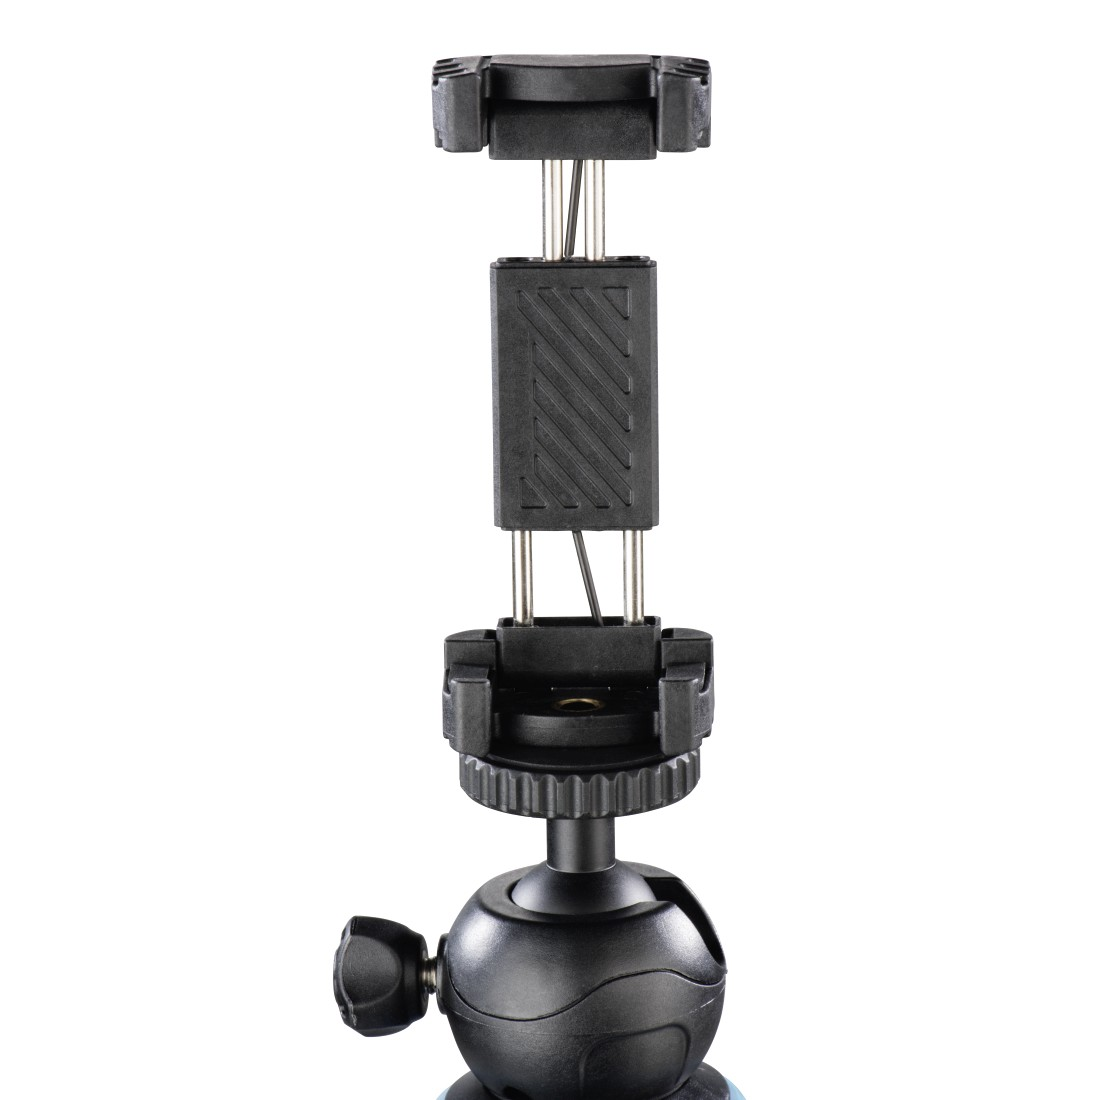 "dex6 High-Res Detail 6 - Hama, ""Traveller Pro"" Tripod for Smartphones, GoPros, Photo Cameras, 106 - 2D"